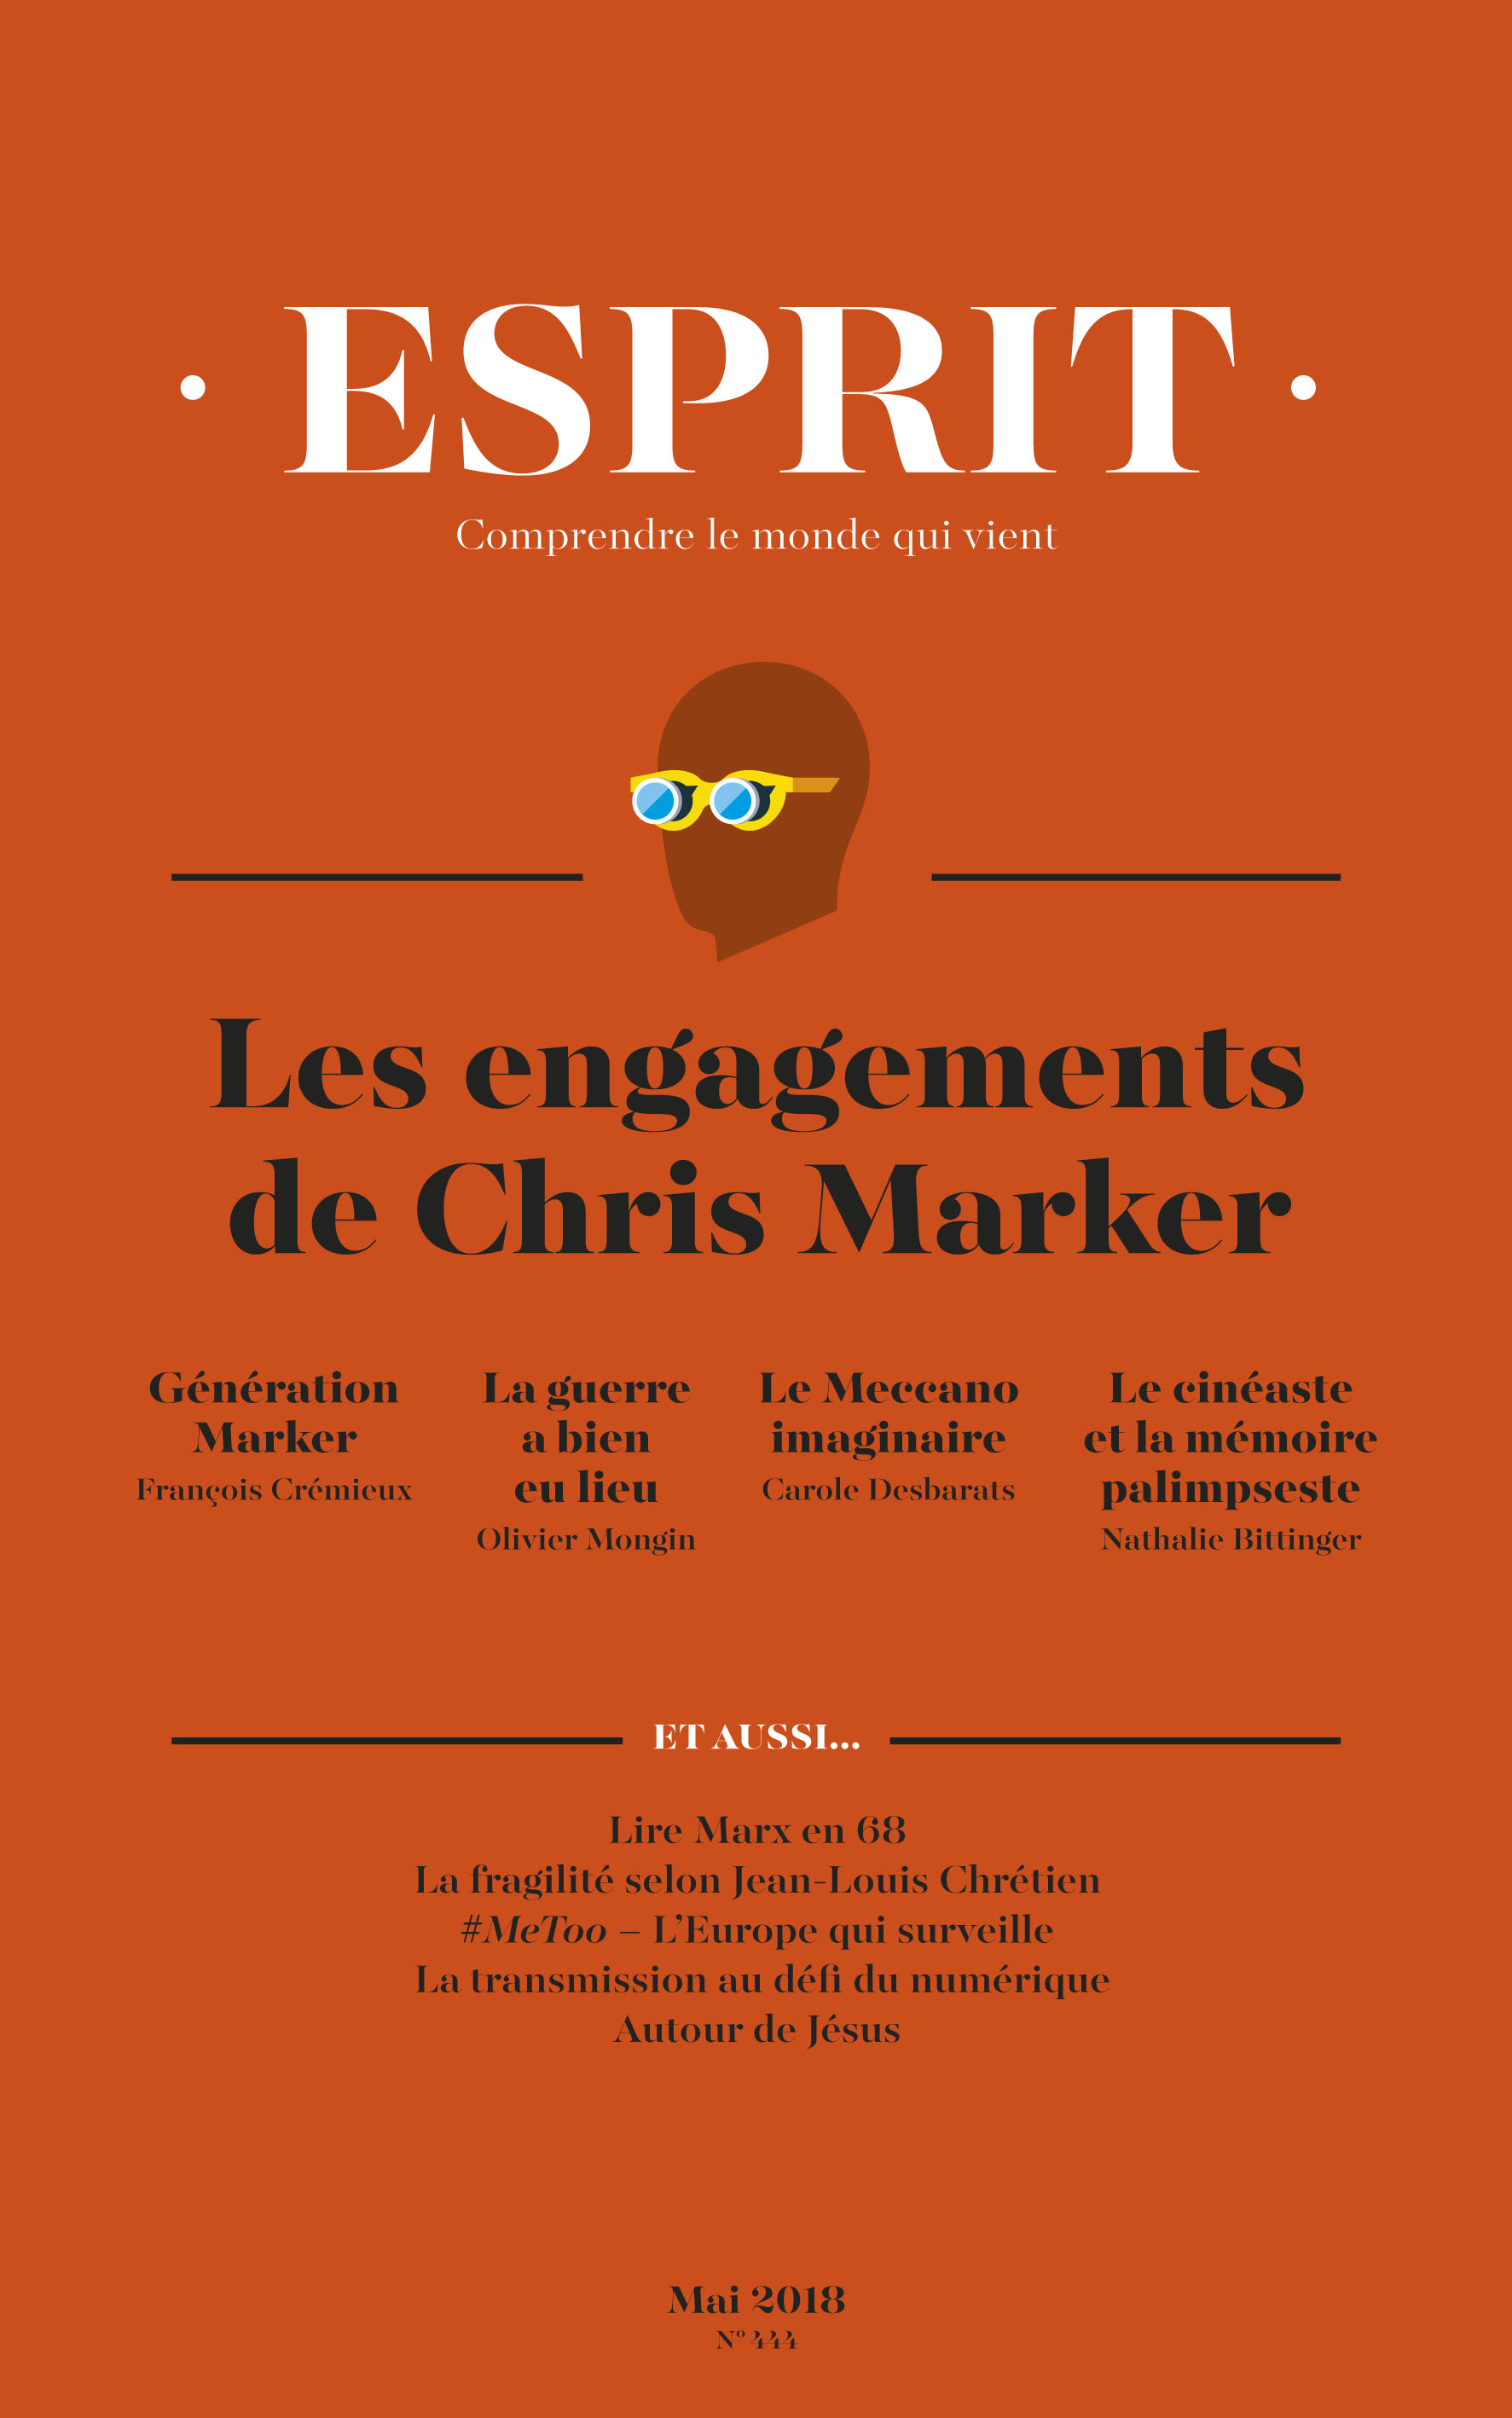 Les engagements de Chris Marker